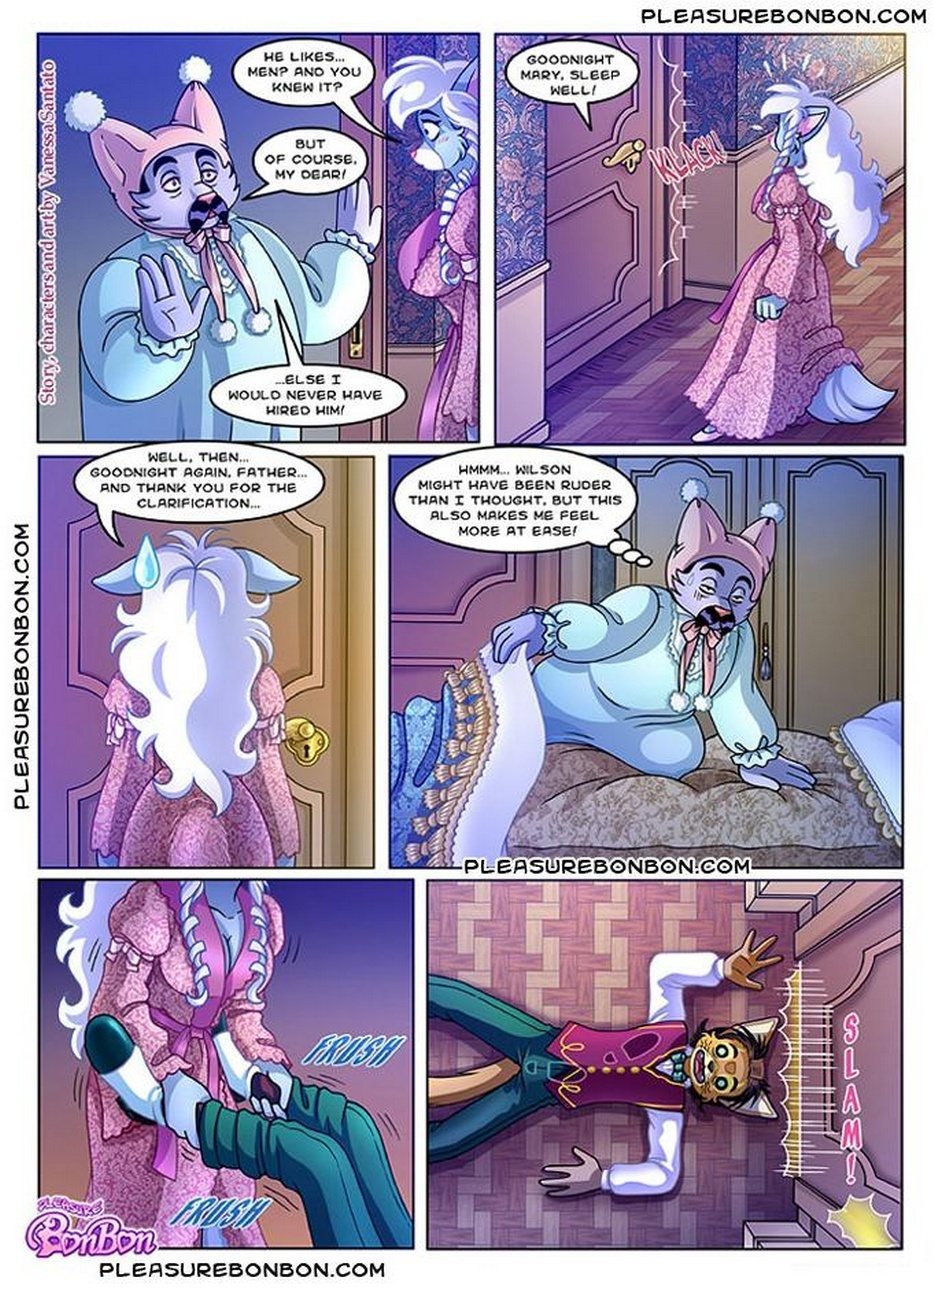 Pleasure Bon Bon 7 - The Long Night 18 free sex comic